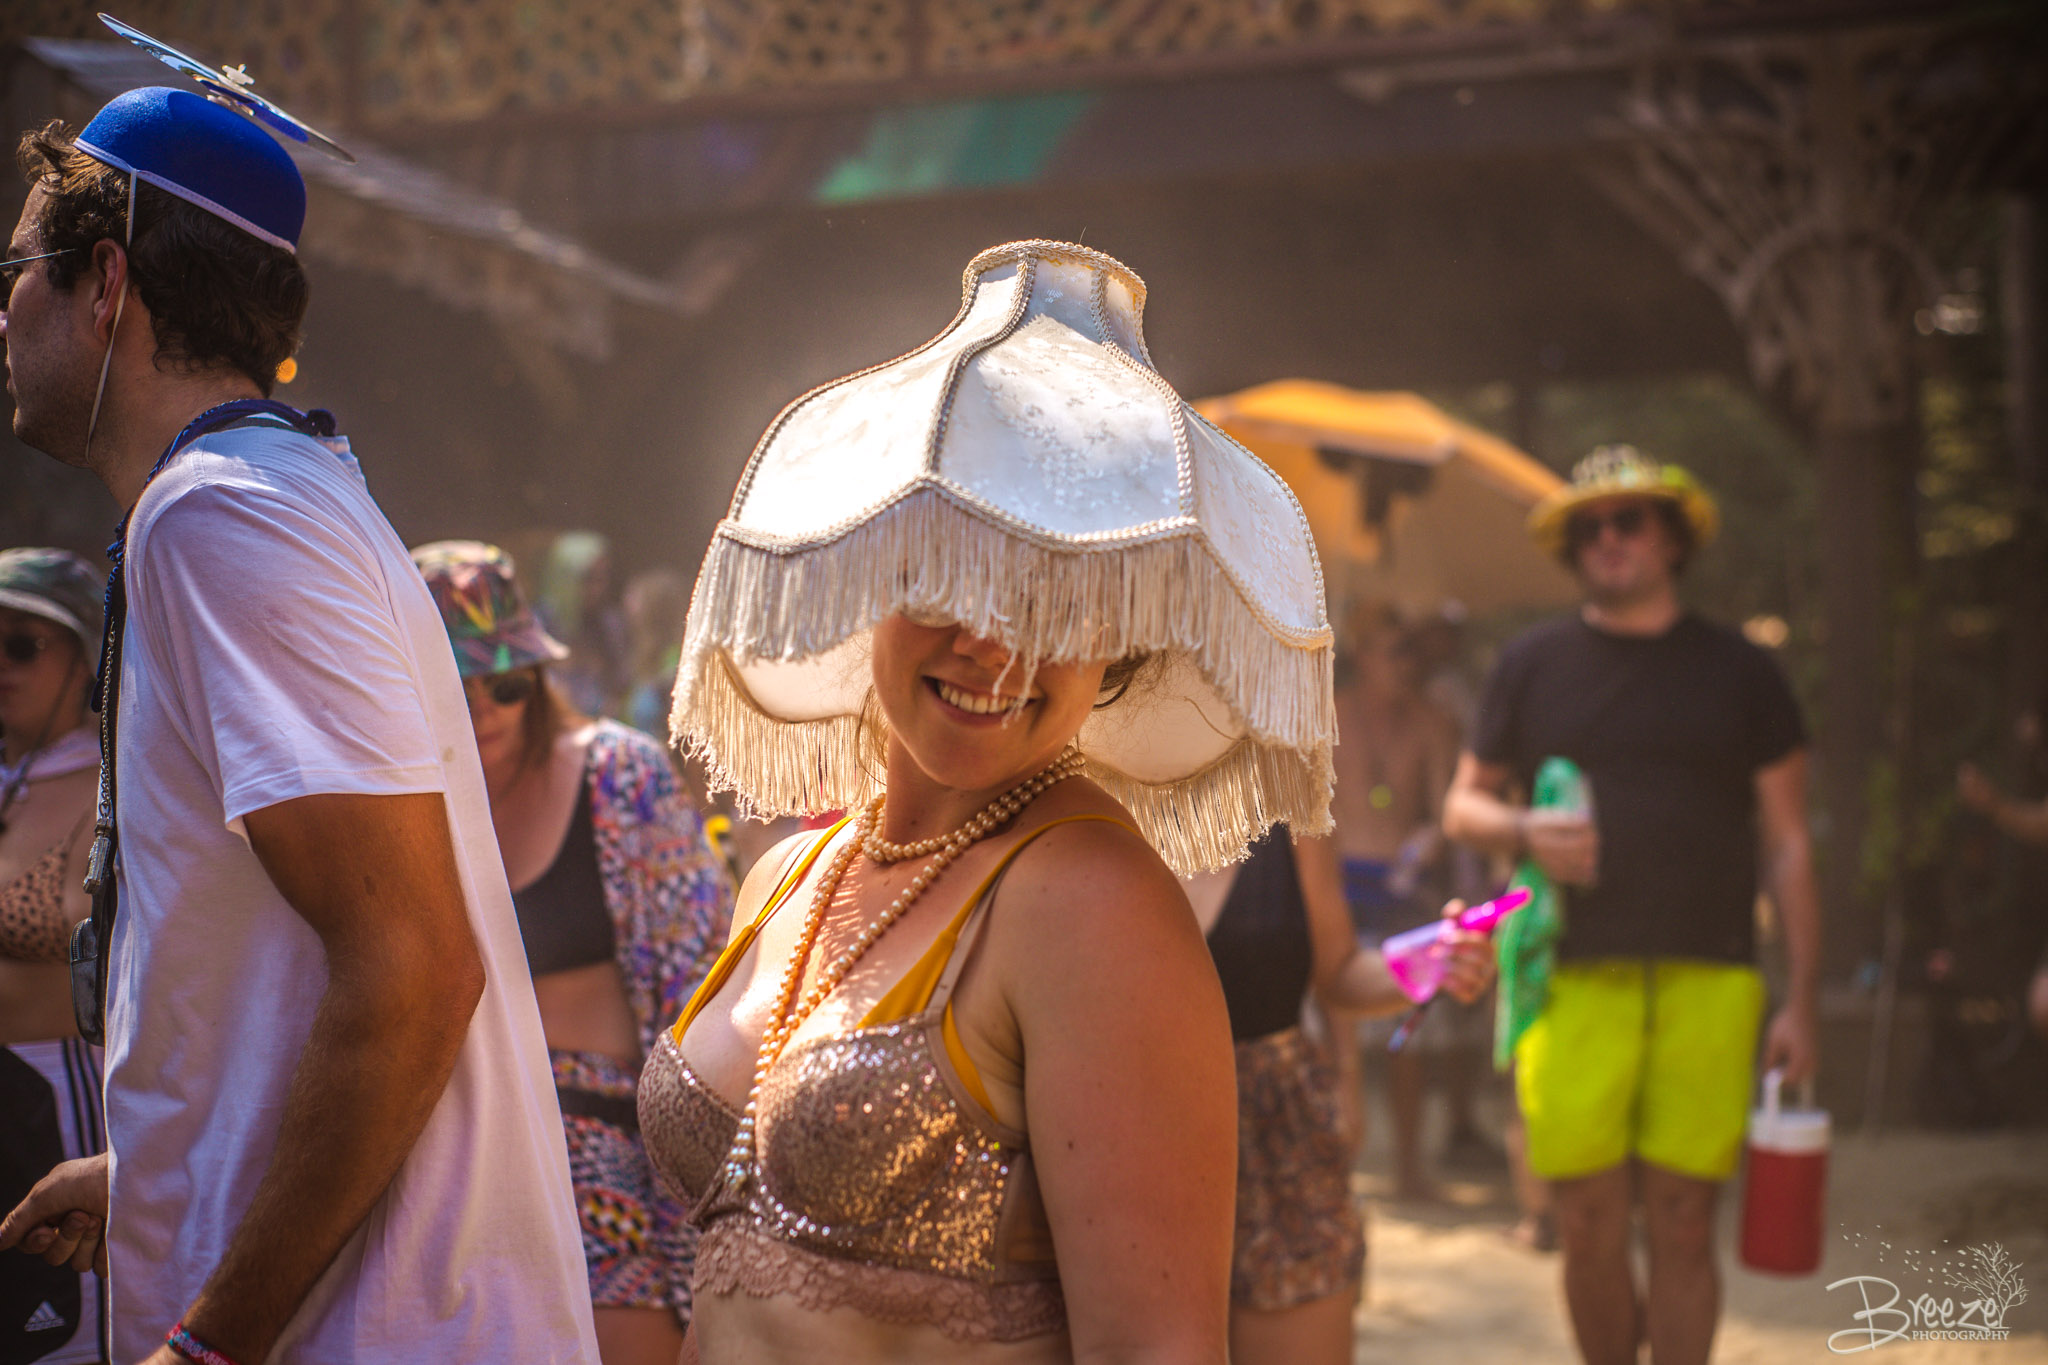 Brie'Ana Breeze Photography & Media - Shambhala 2018-0497.jpg